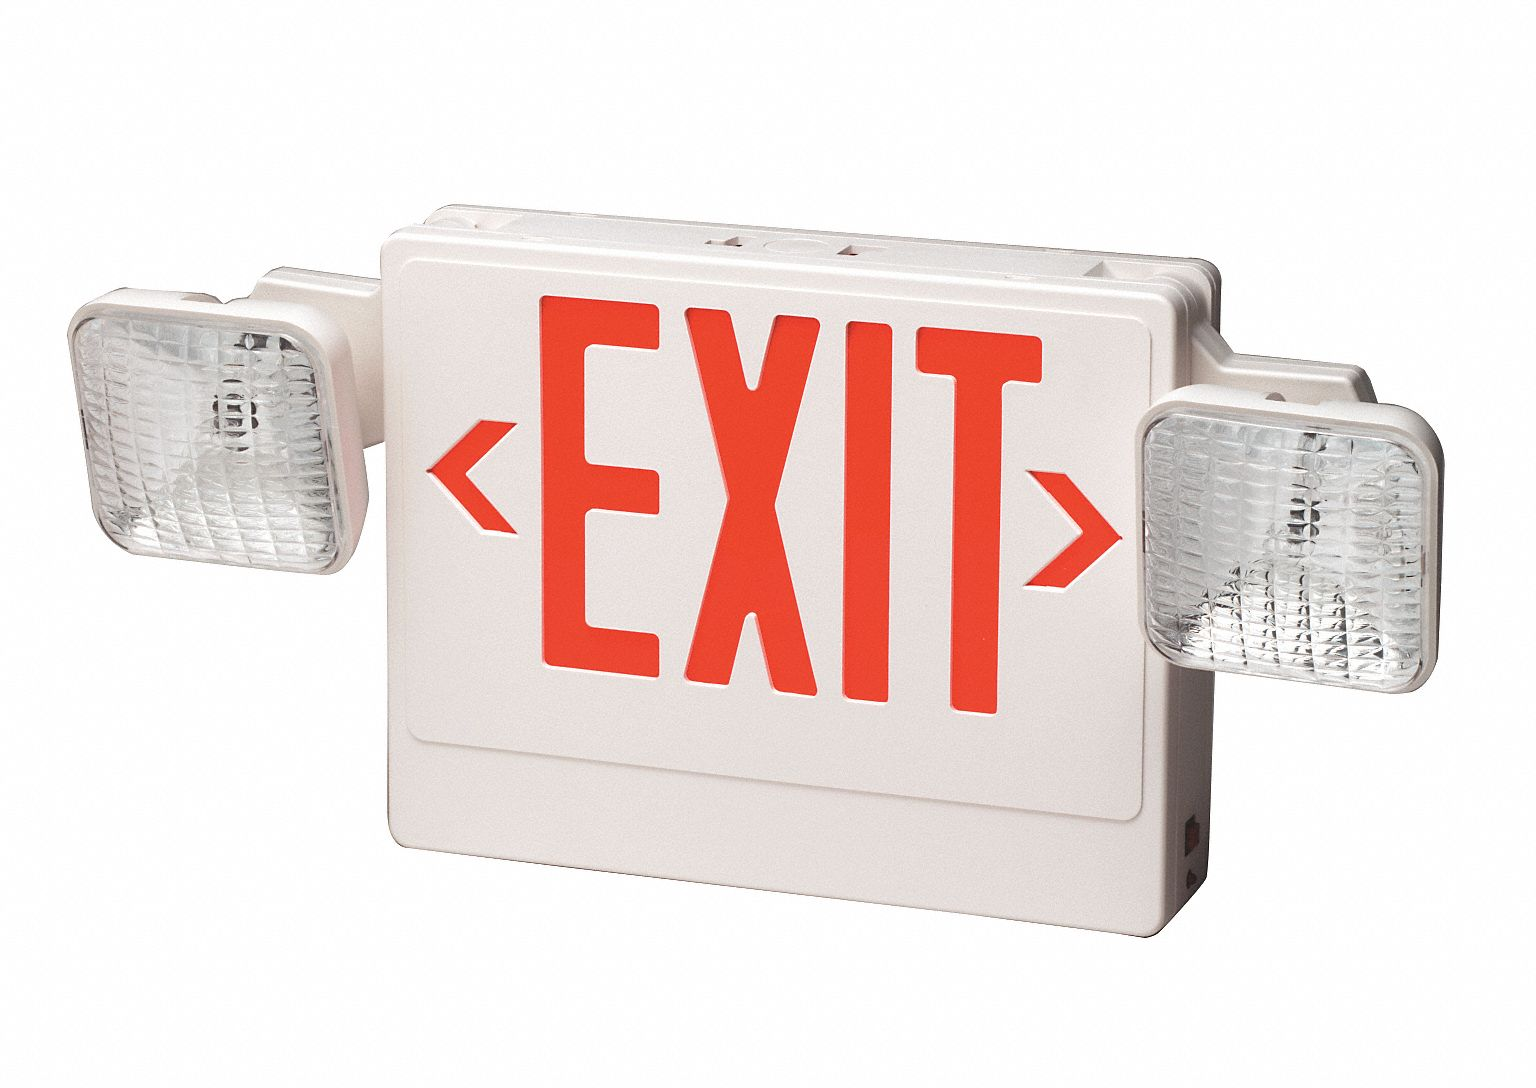 Number of Faces 2,  LED,  Exit Sign with Emergency Lights,  White,  Plastic,  Letter Color Red